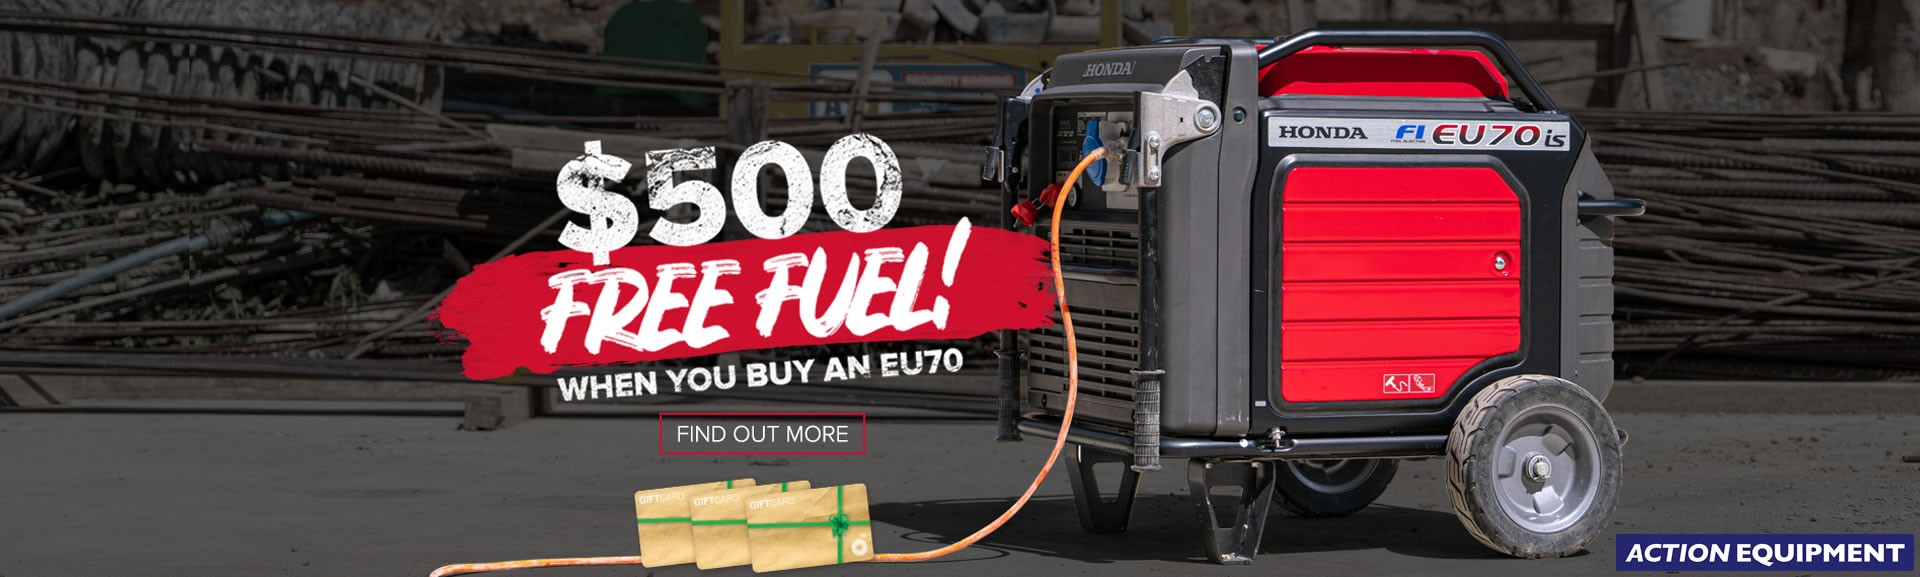 Free fuel with Honda EU70is inverter